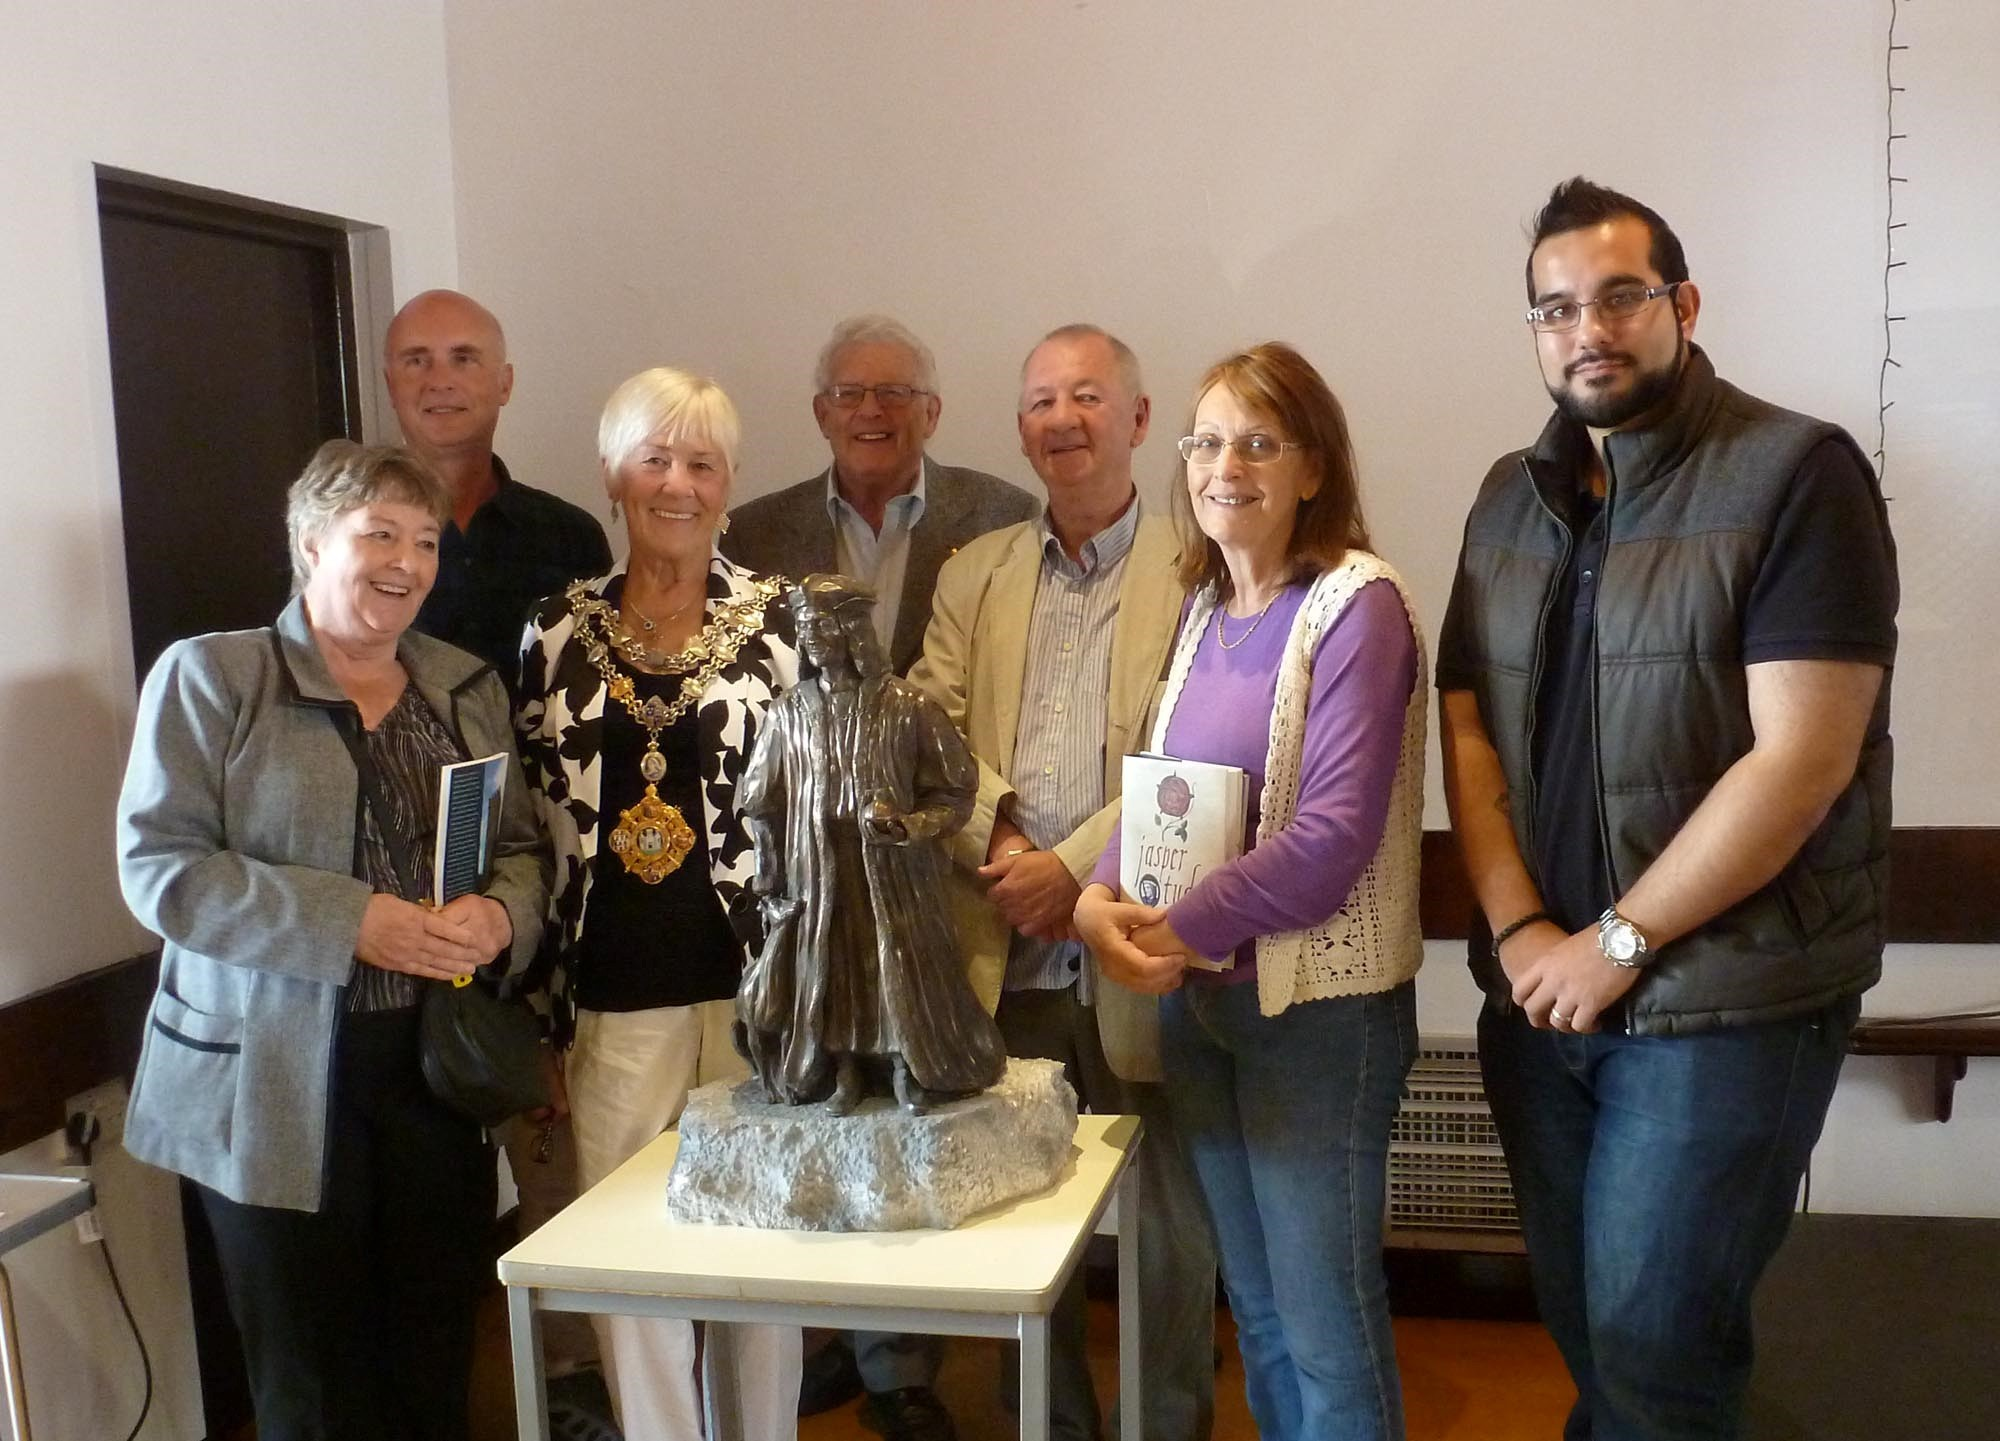 Pictured with the maquette of Henry VII are Pembroke councillor and town crier Rose Blackburn, Tony Riches, Mayor Pauline Waters, George Lewis, Terry Breverton, Cllr Linda Asman and Nathen Amin. (41709244)